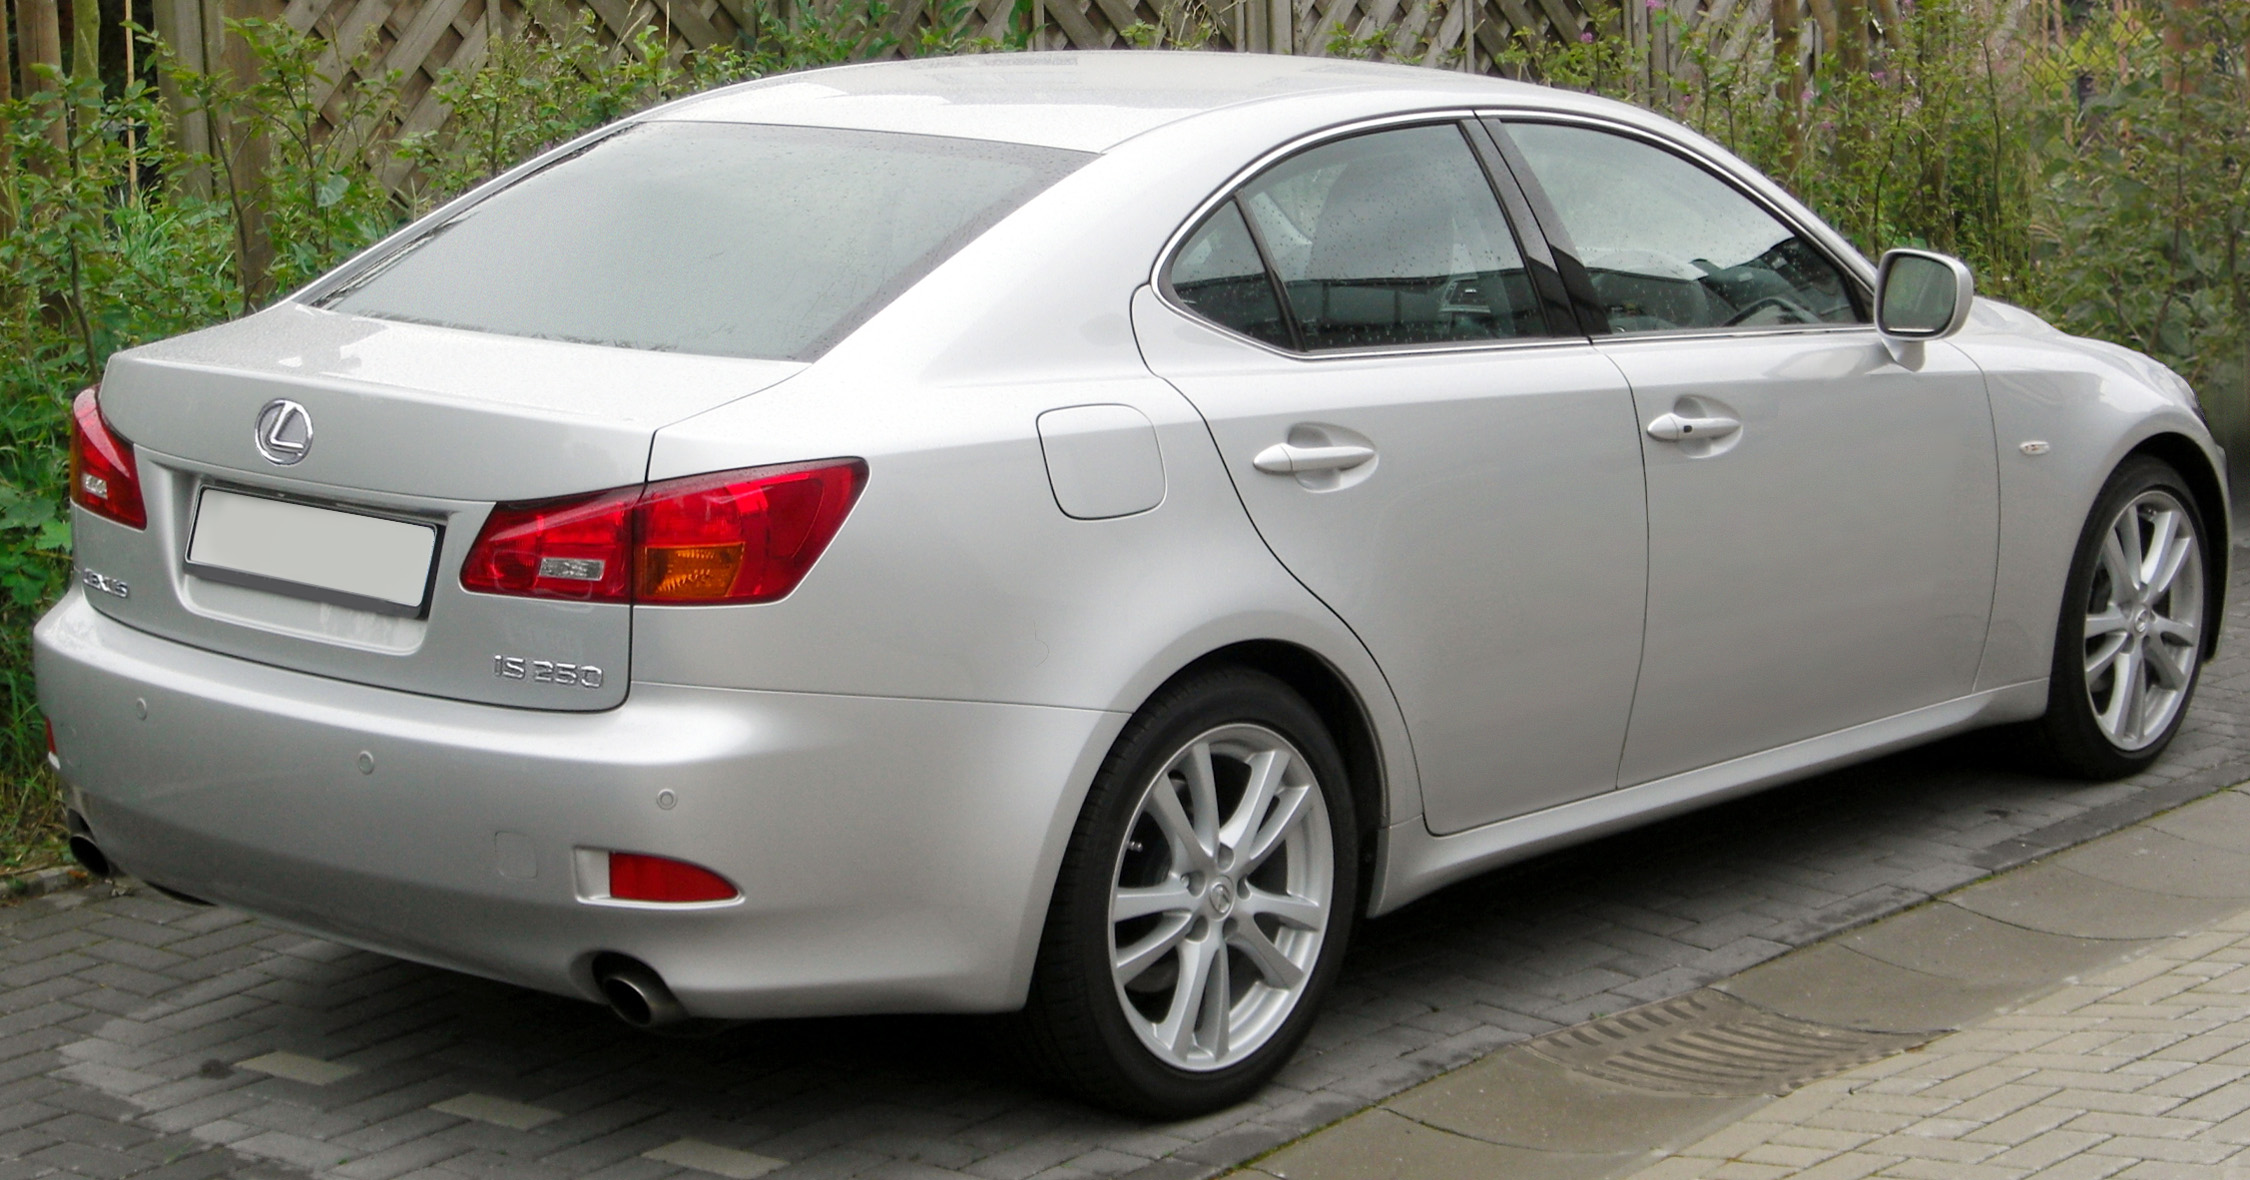 File Lexus IS250 2008 Tungsten aft Wikimedia mons